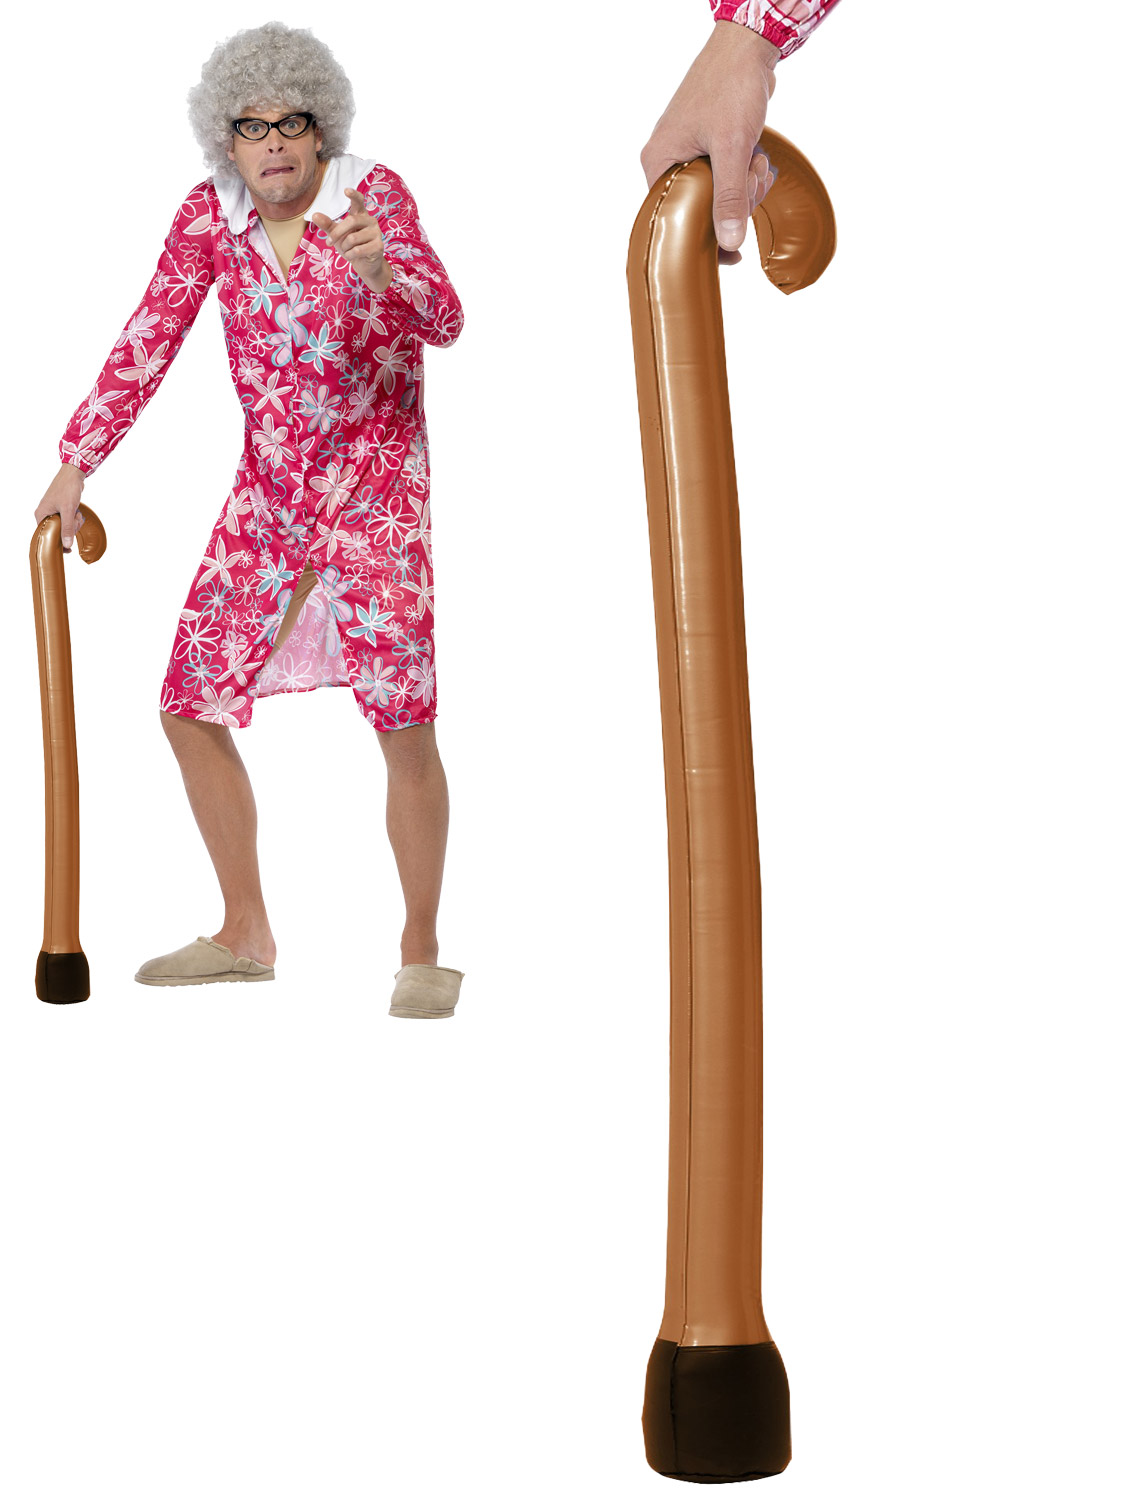 Inflatable Zimmer Frame Blow Up Fancy Dress Accessory Old Oap Hen Stag Party Toy